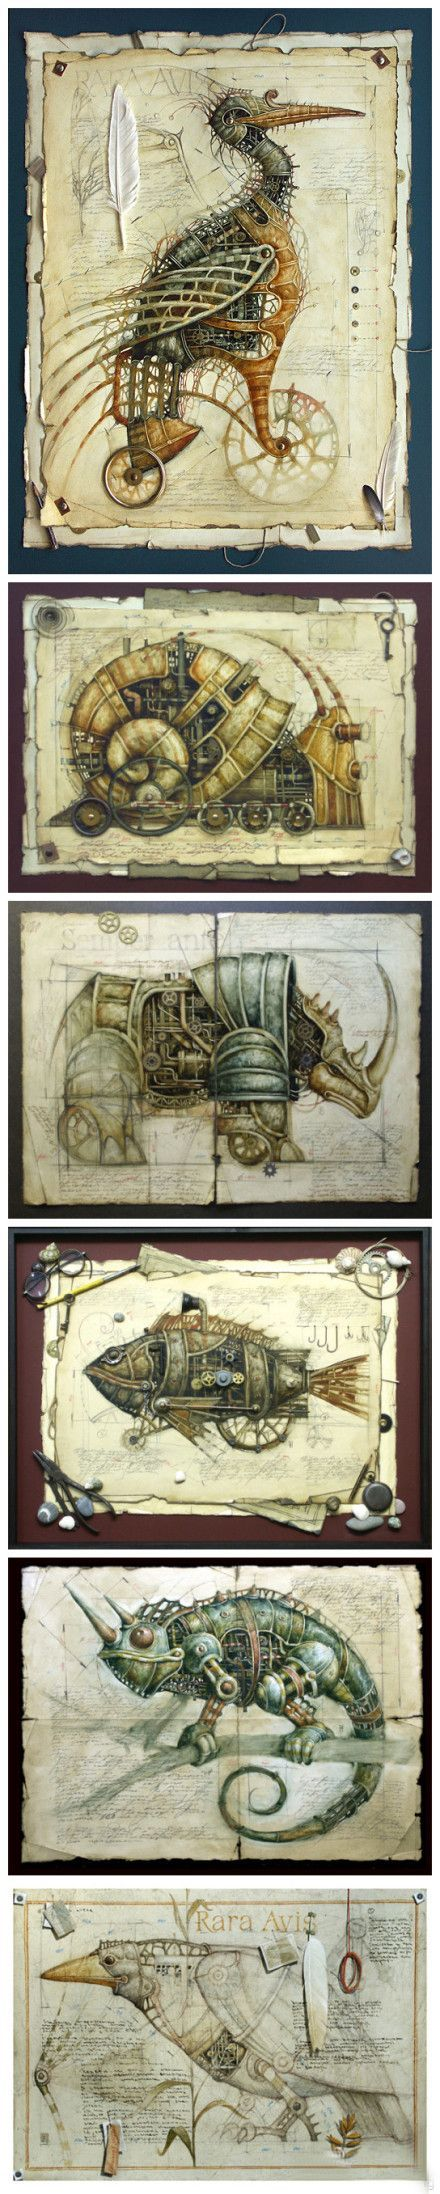 Beautiful artwork of steampunk animals. Starting point for maybe a middle school art project.: